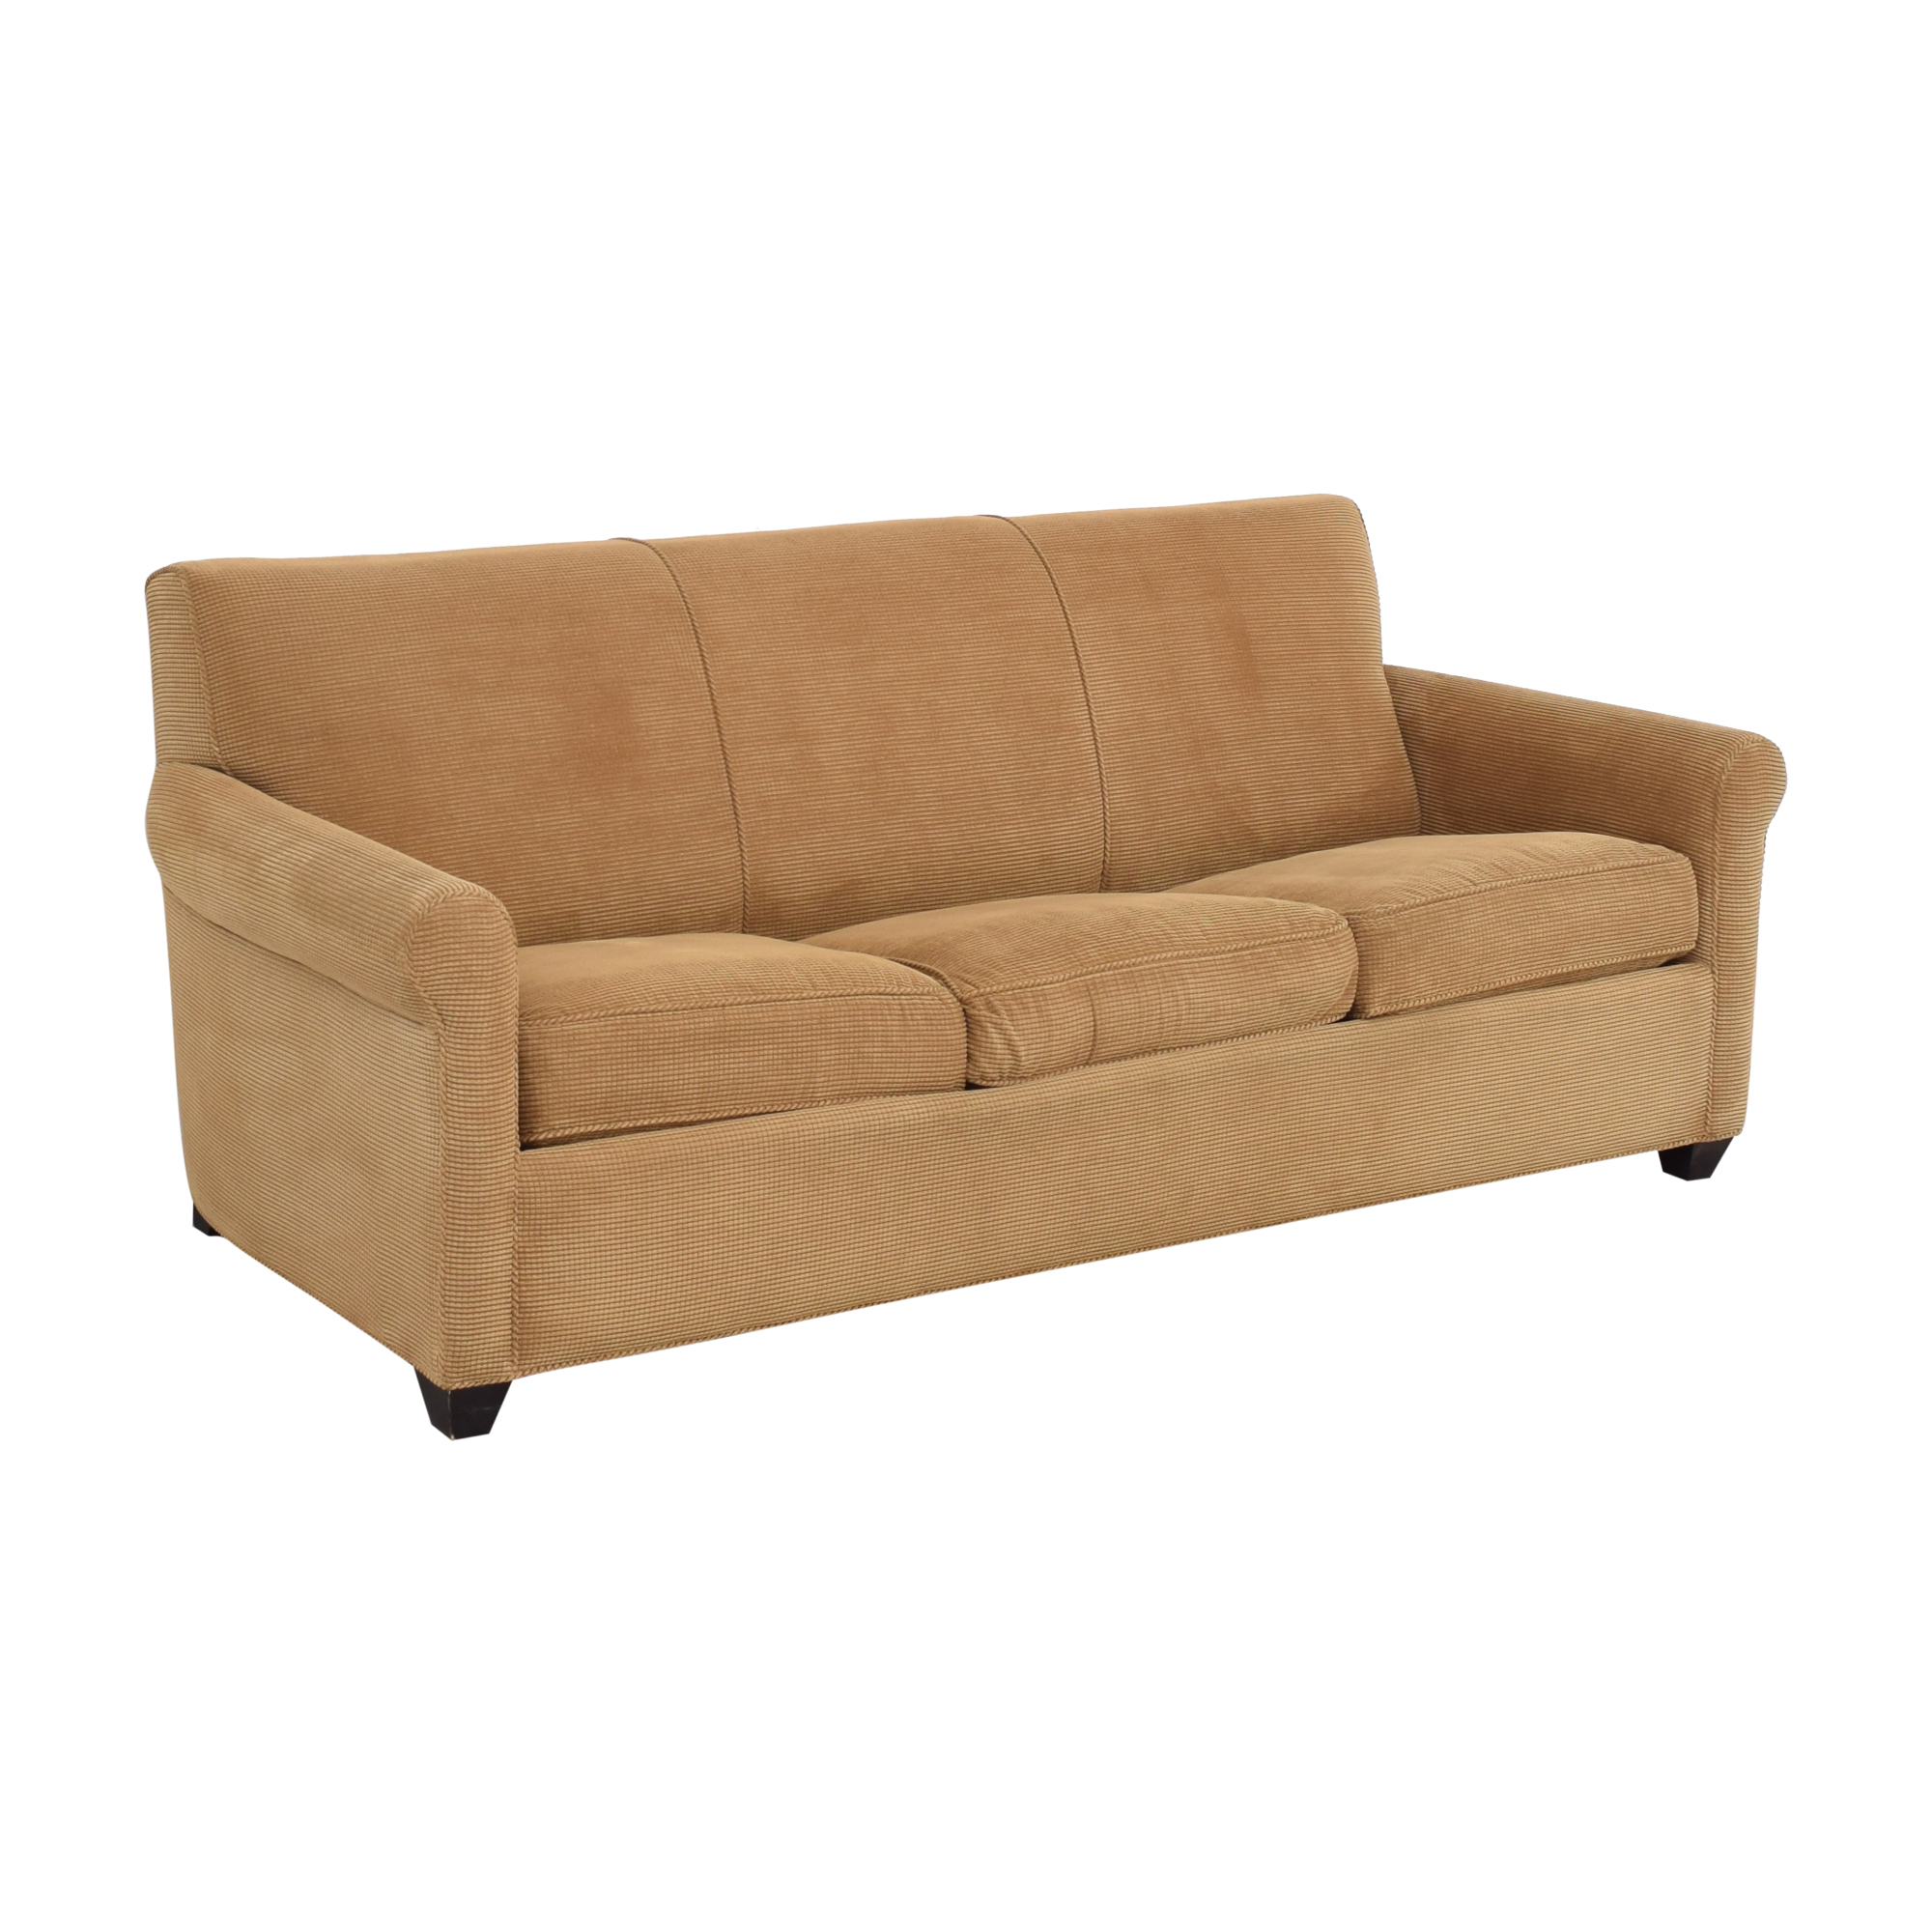 shop Crate & Barrel Crate & Barrel Rolled Arm Queen Sleeper Sofa online